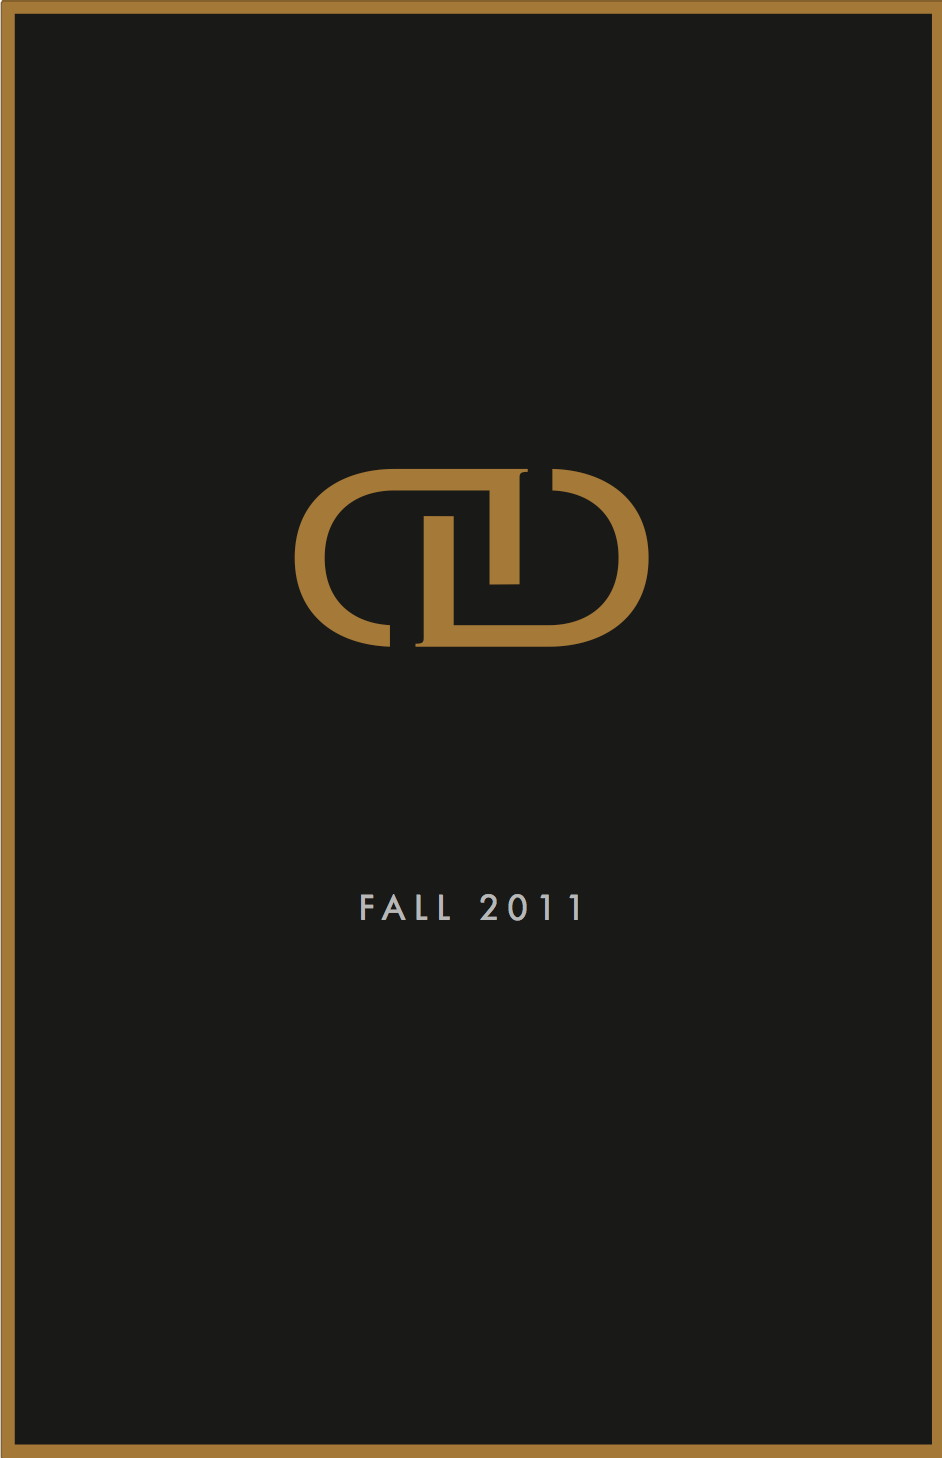 DD_Fall2011_cover_2013_TjLaManna.png